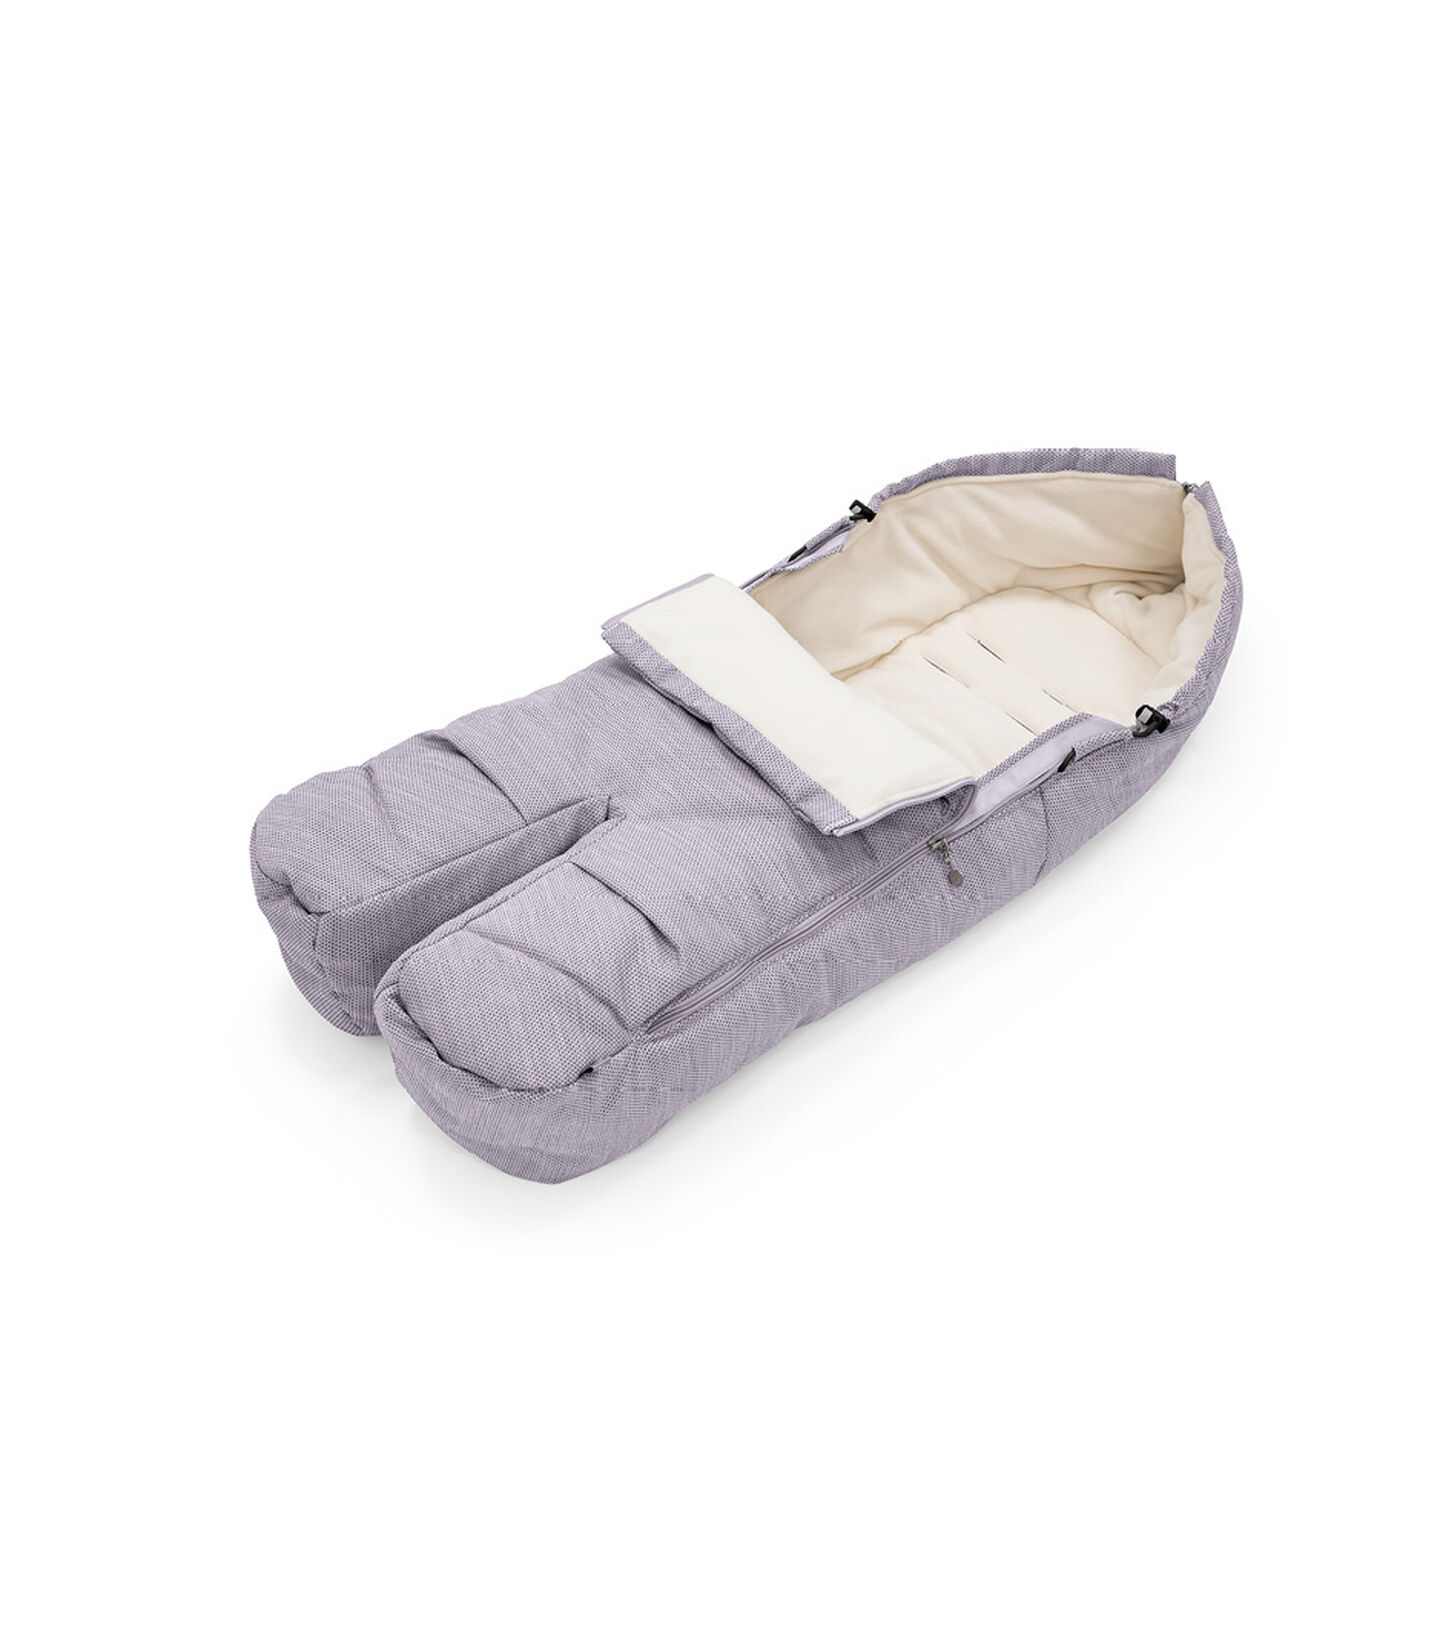 Stokke® Foot Muff Brushed Lilac, Brushed Lilac, mainview view 1